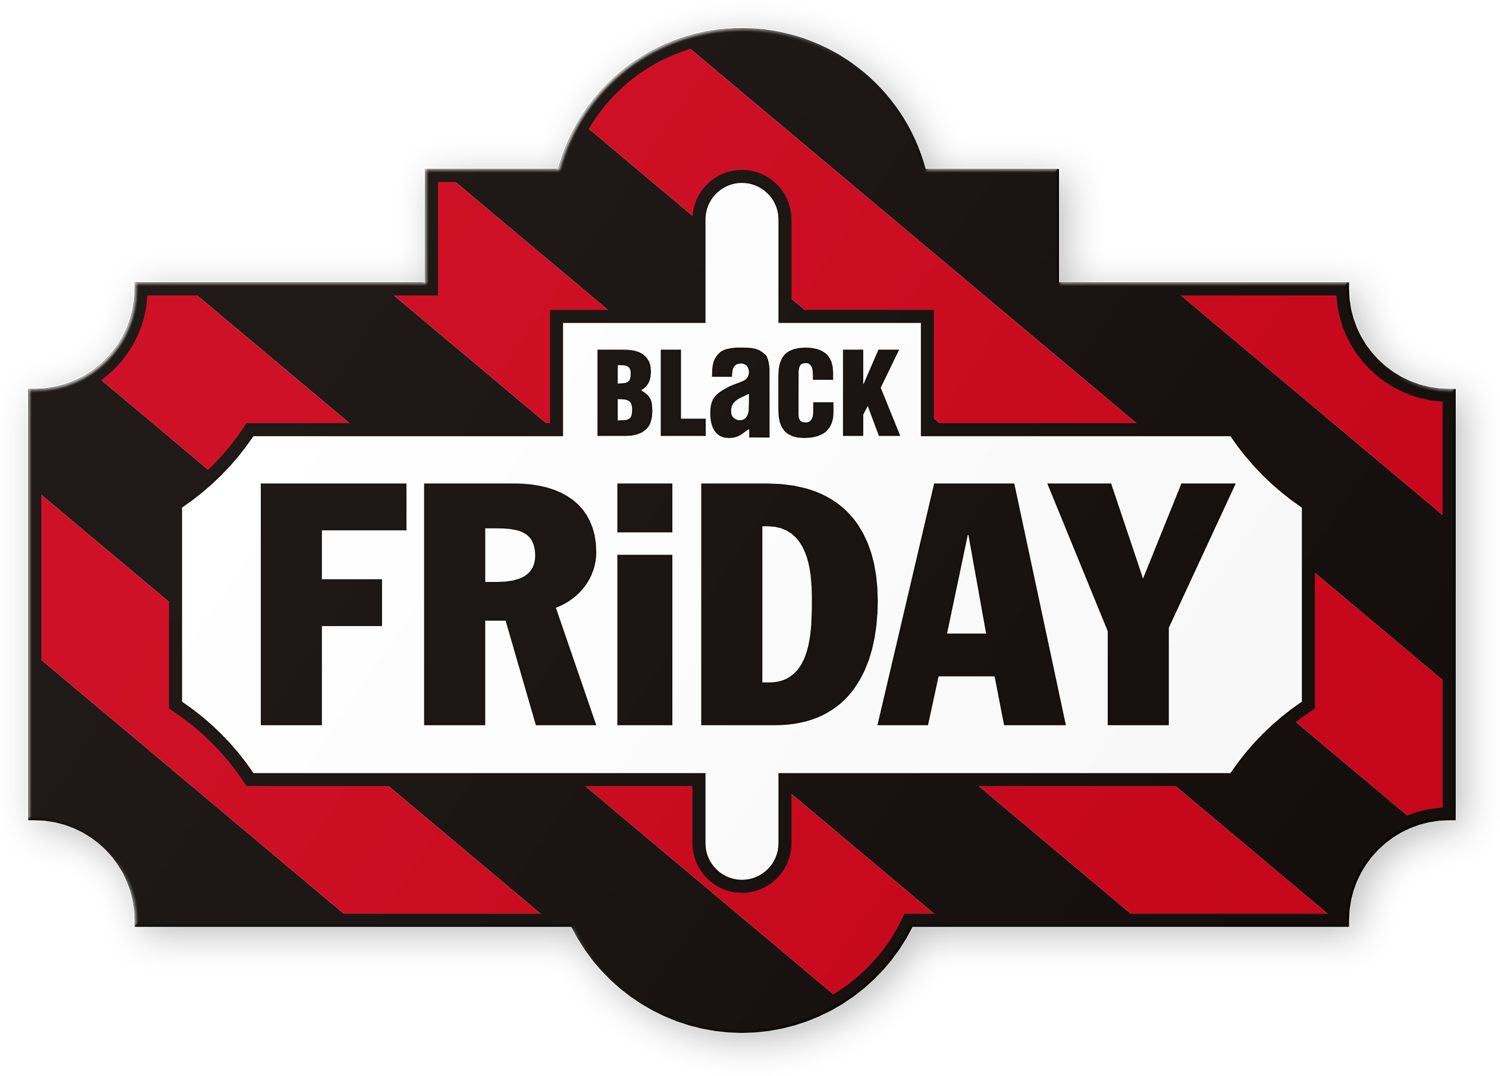 Download And Use Black Friday Png Clipart image #33112